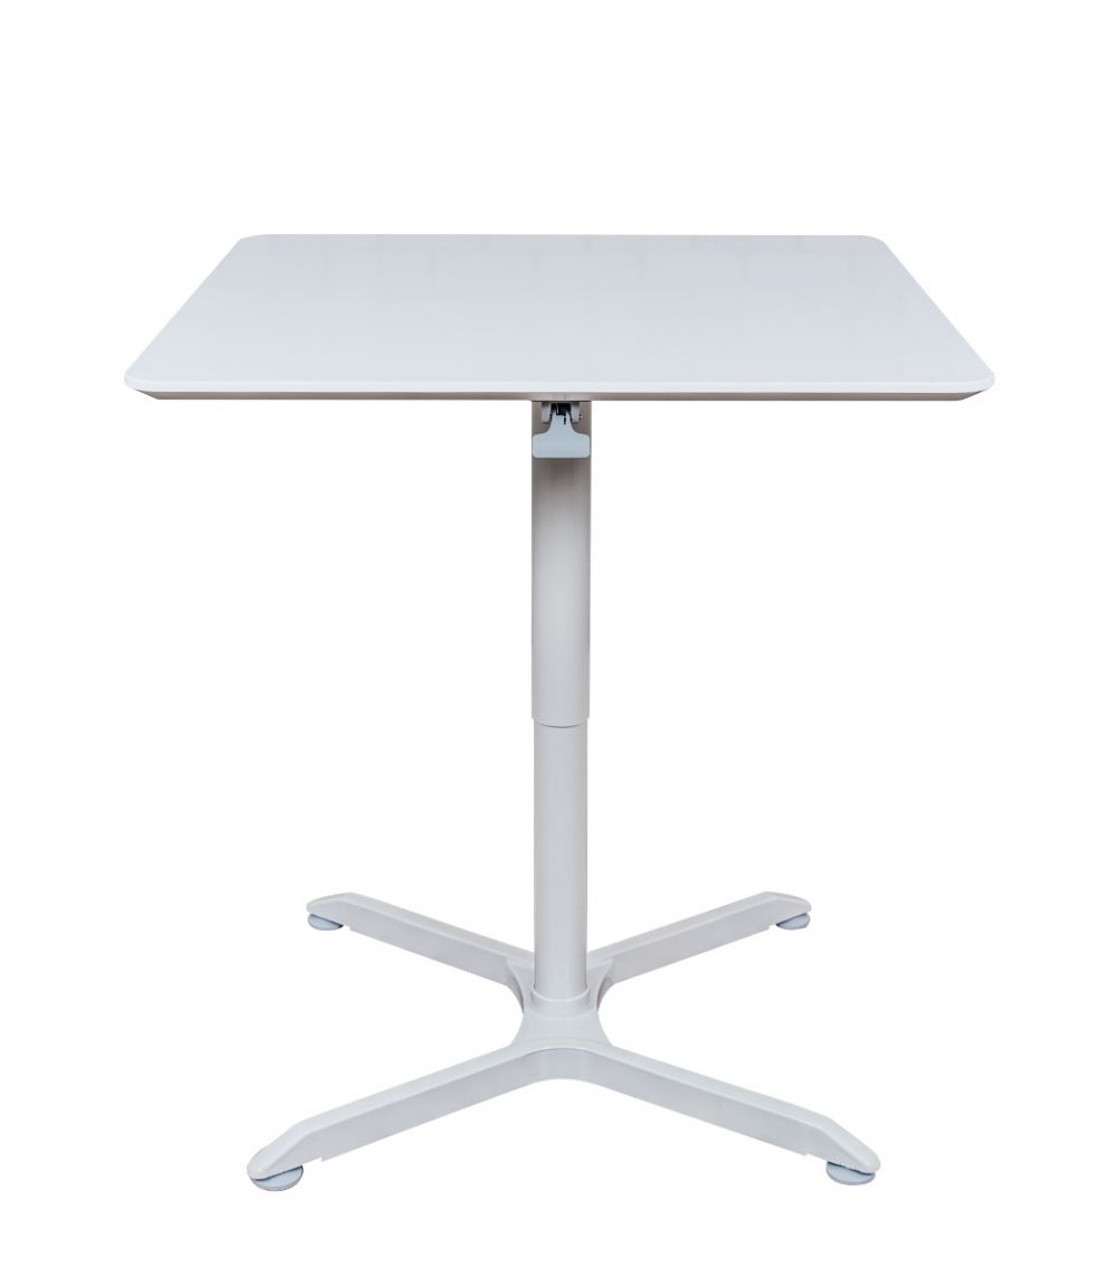 "32"" PNEUMATIC HEIGHT ADJUSTABLE SQUARE TABLE"